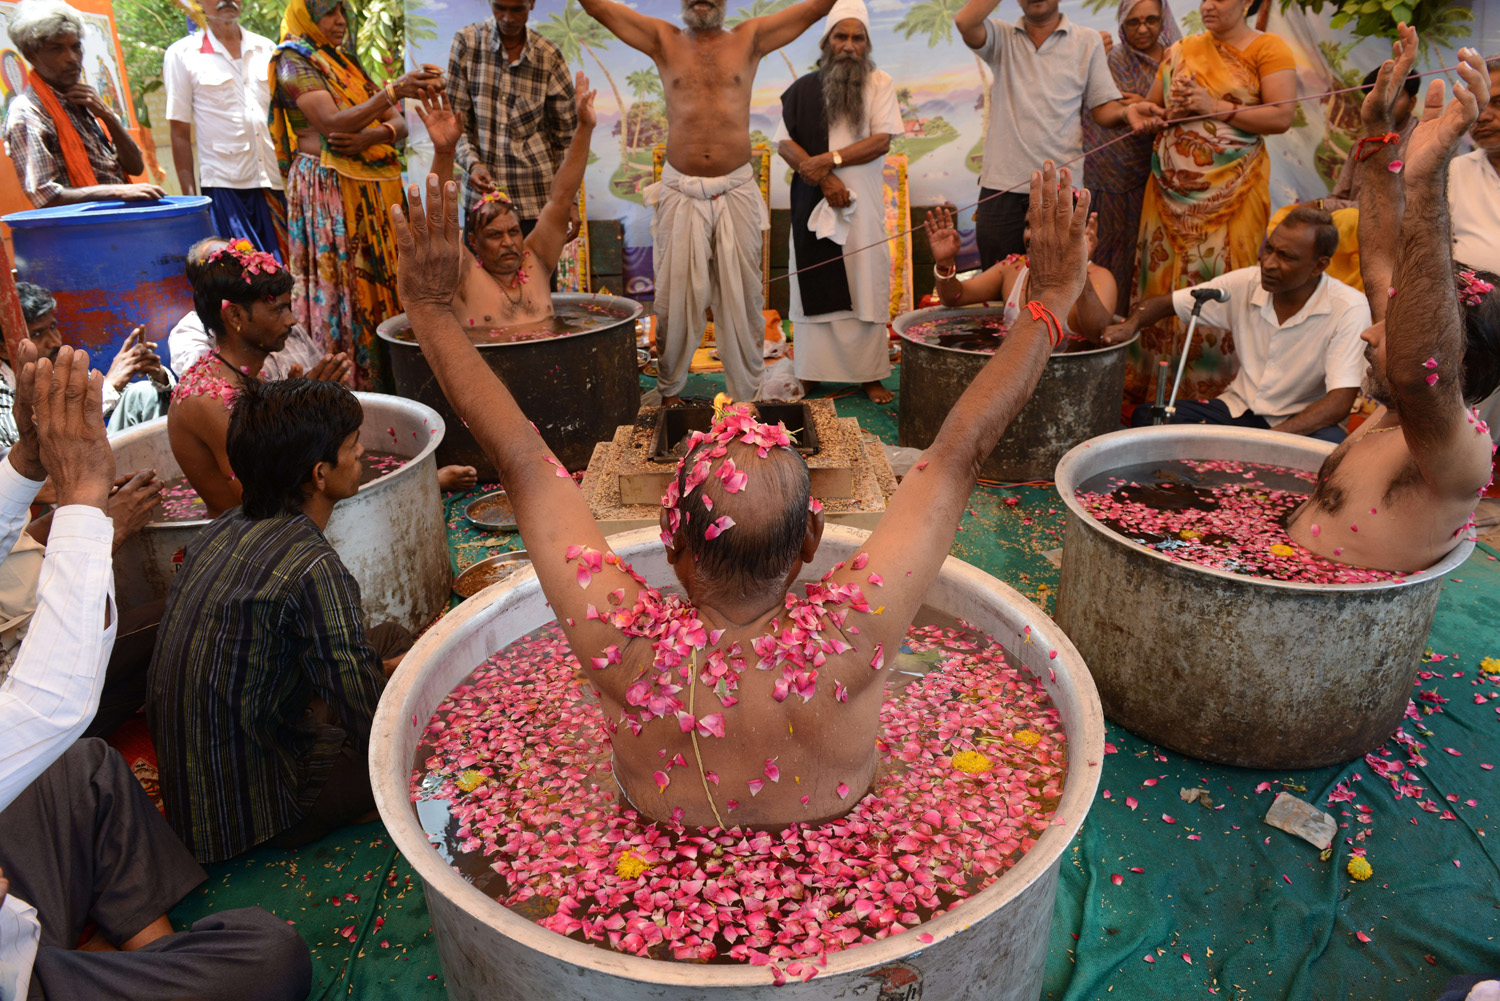 Indian Hindu Brahmins perform rituals to appease the Rain God on the outskirts of Ahmedabad, India on July 1, 2014.